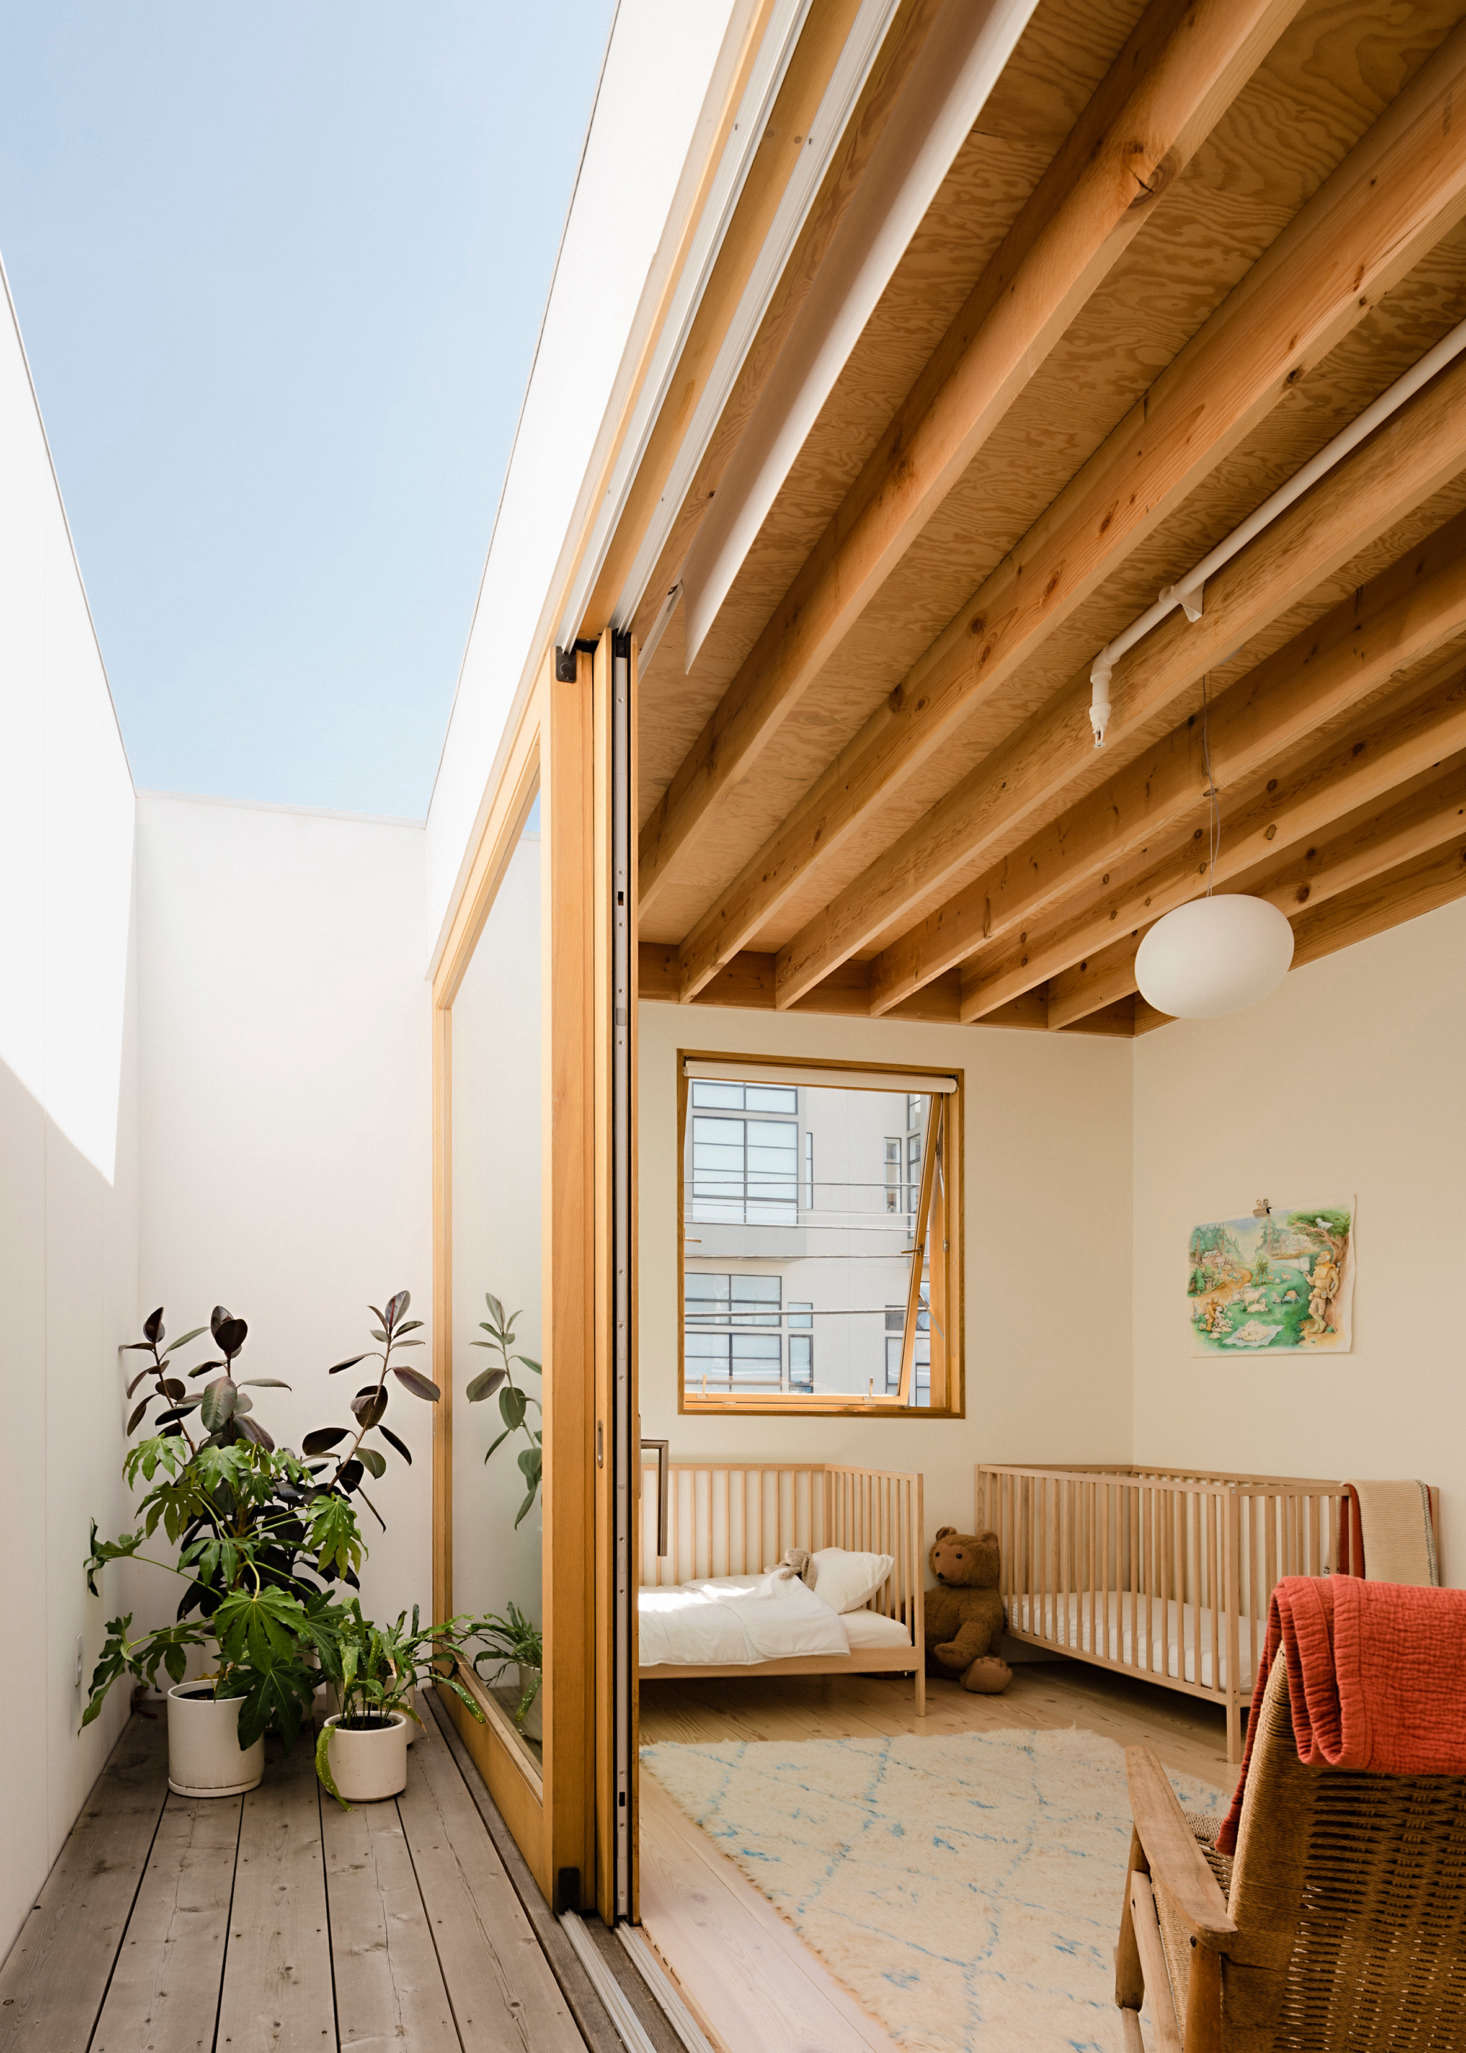 Off the nursery is a lightwell, which offers an easily accessible outdoor space and fresh air.